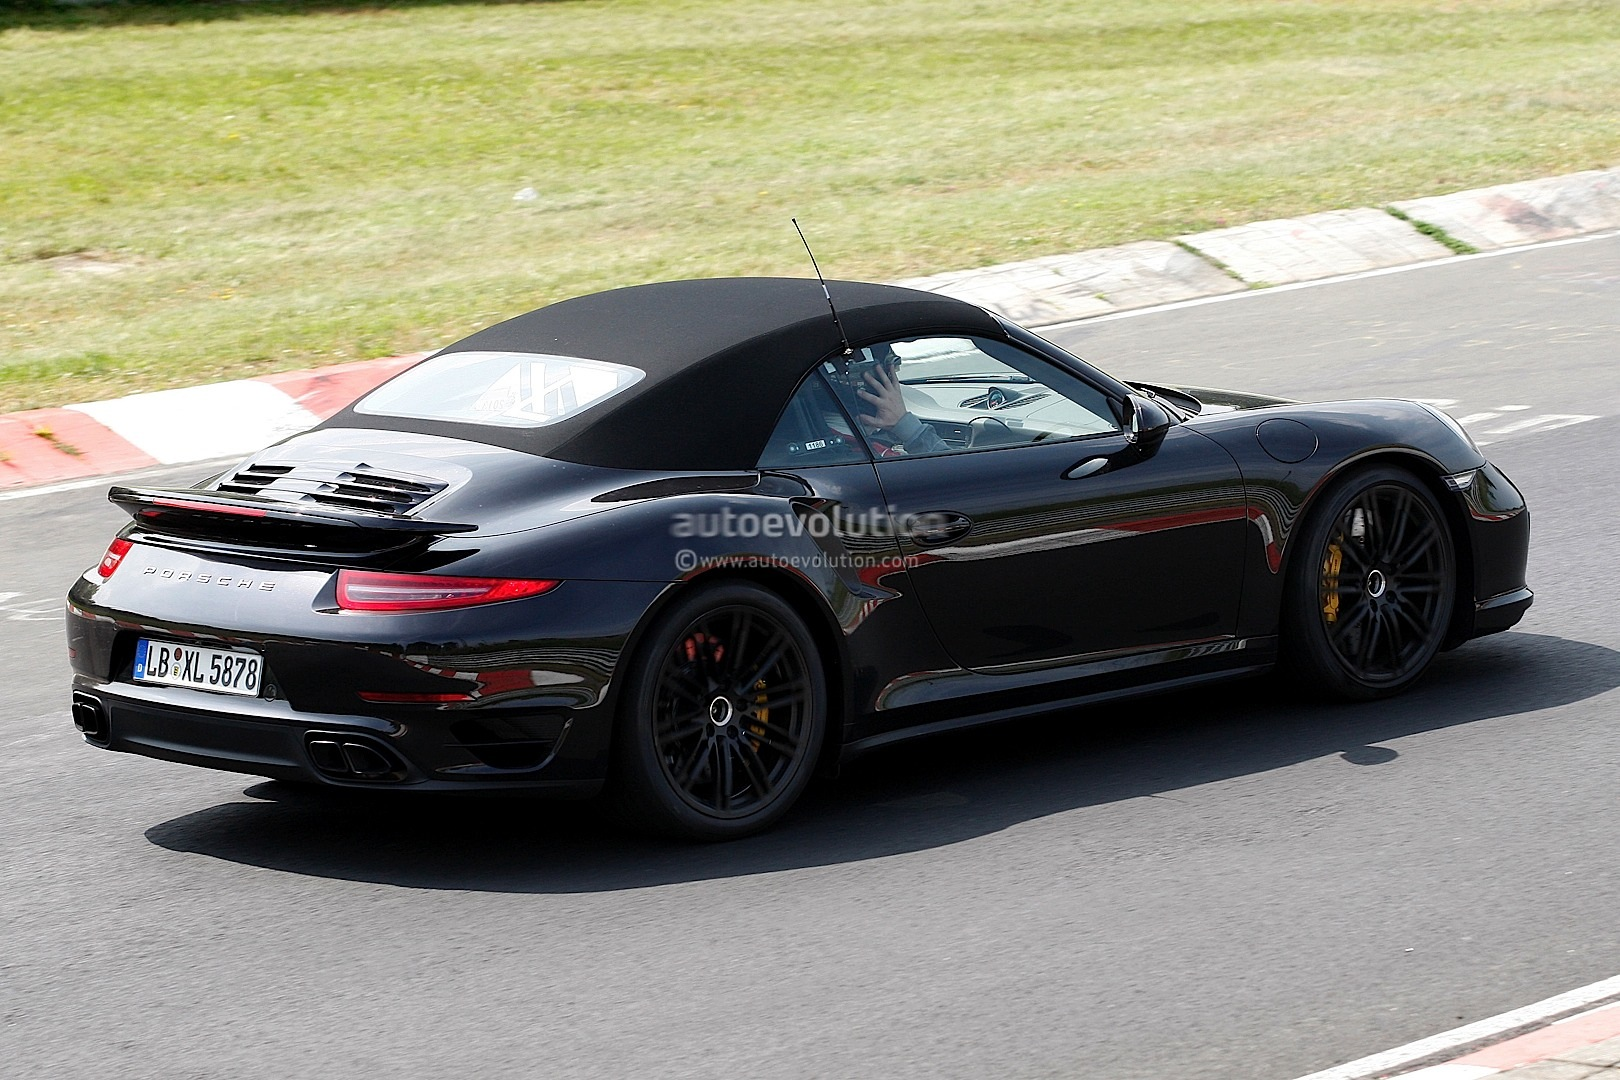 Spyshots 2014 Porsche 911 Turbo Cabriolet Laps The